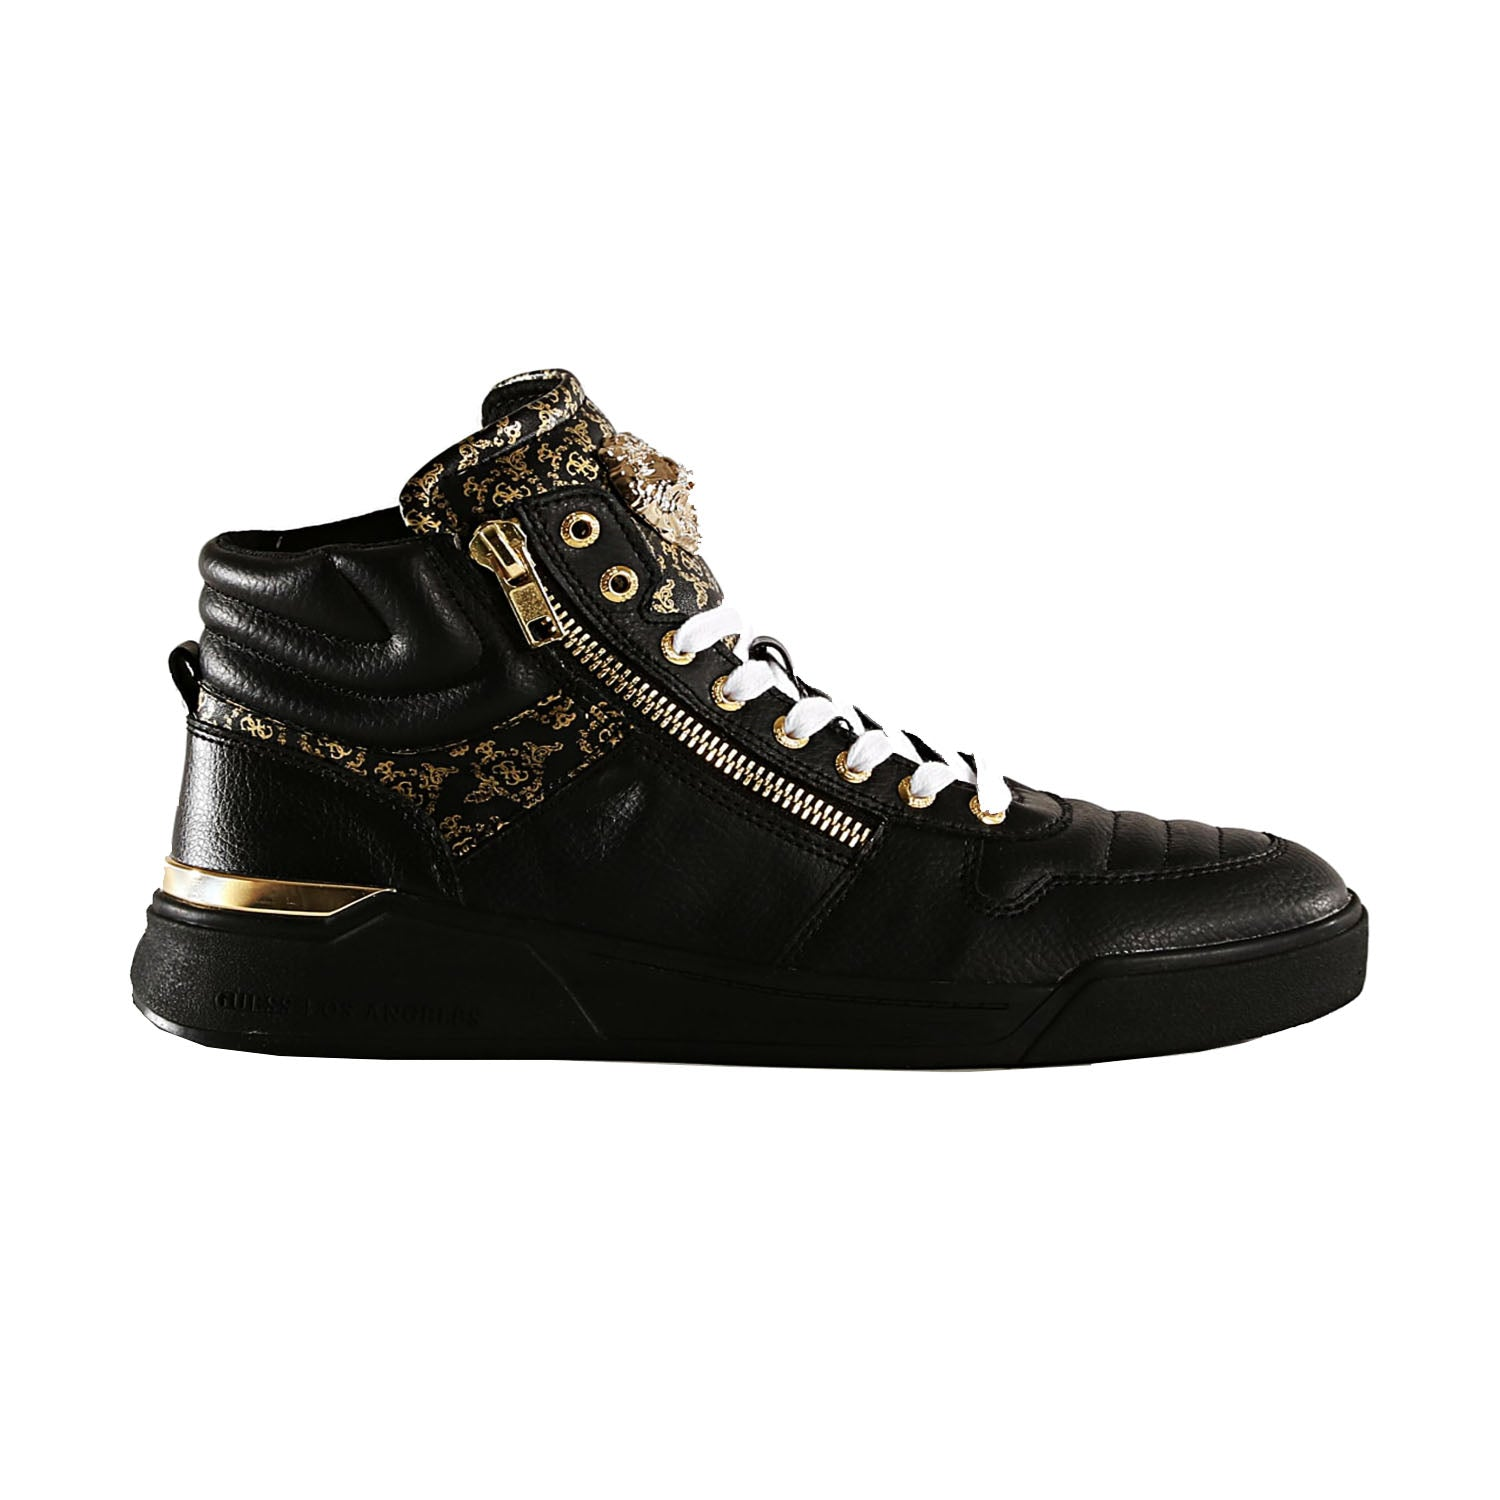 Guess Gold Motif Detail Leather Trainer